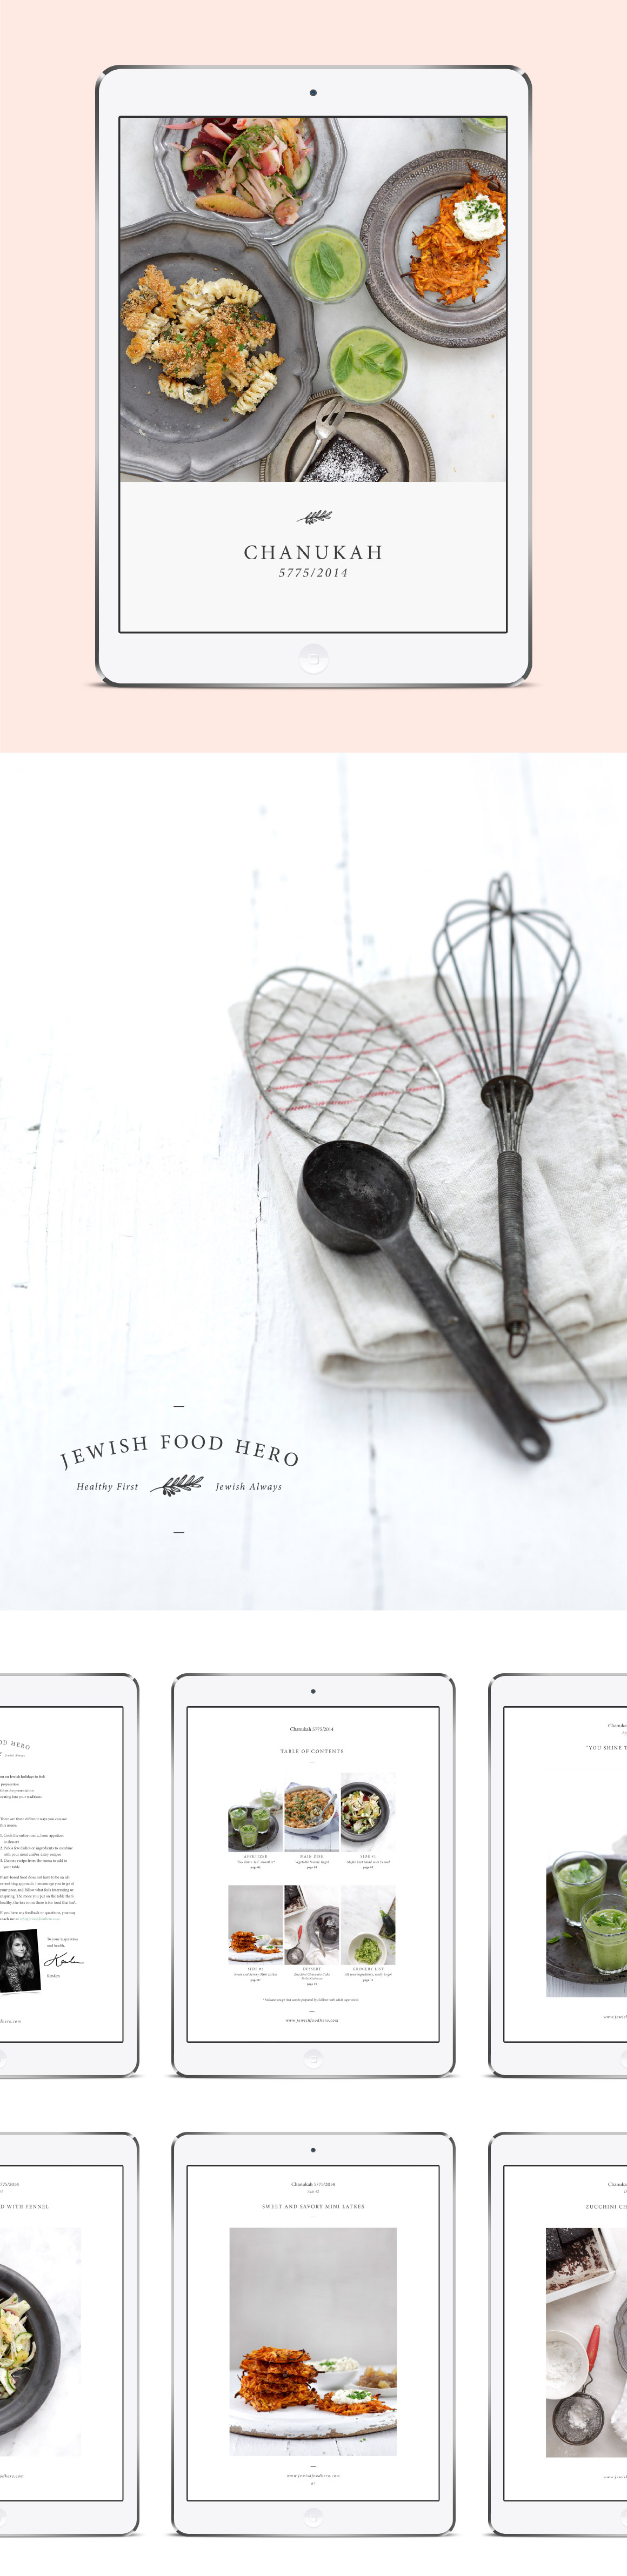 Jewish Food Hero | Design by One Plus One Design